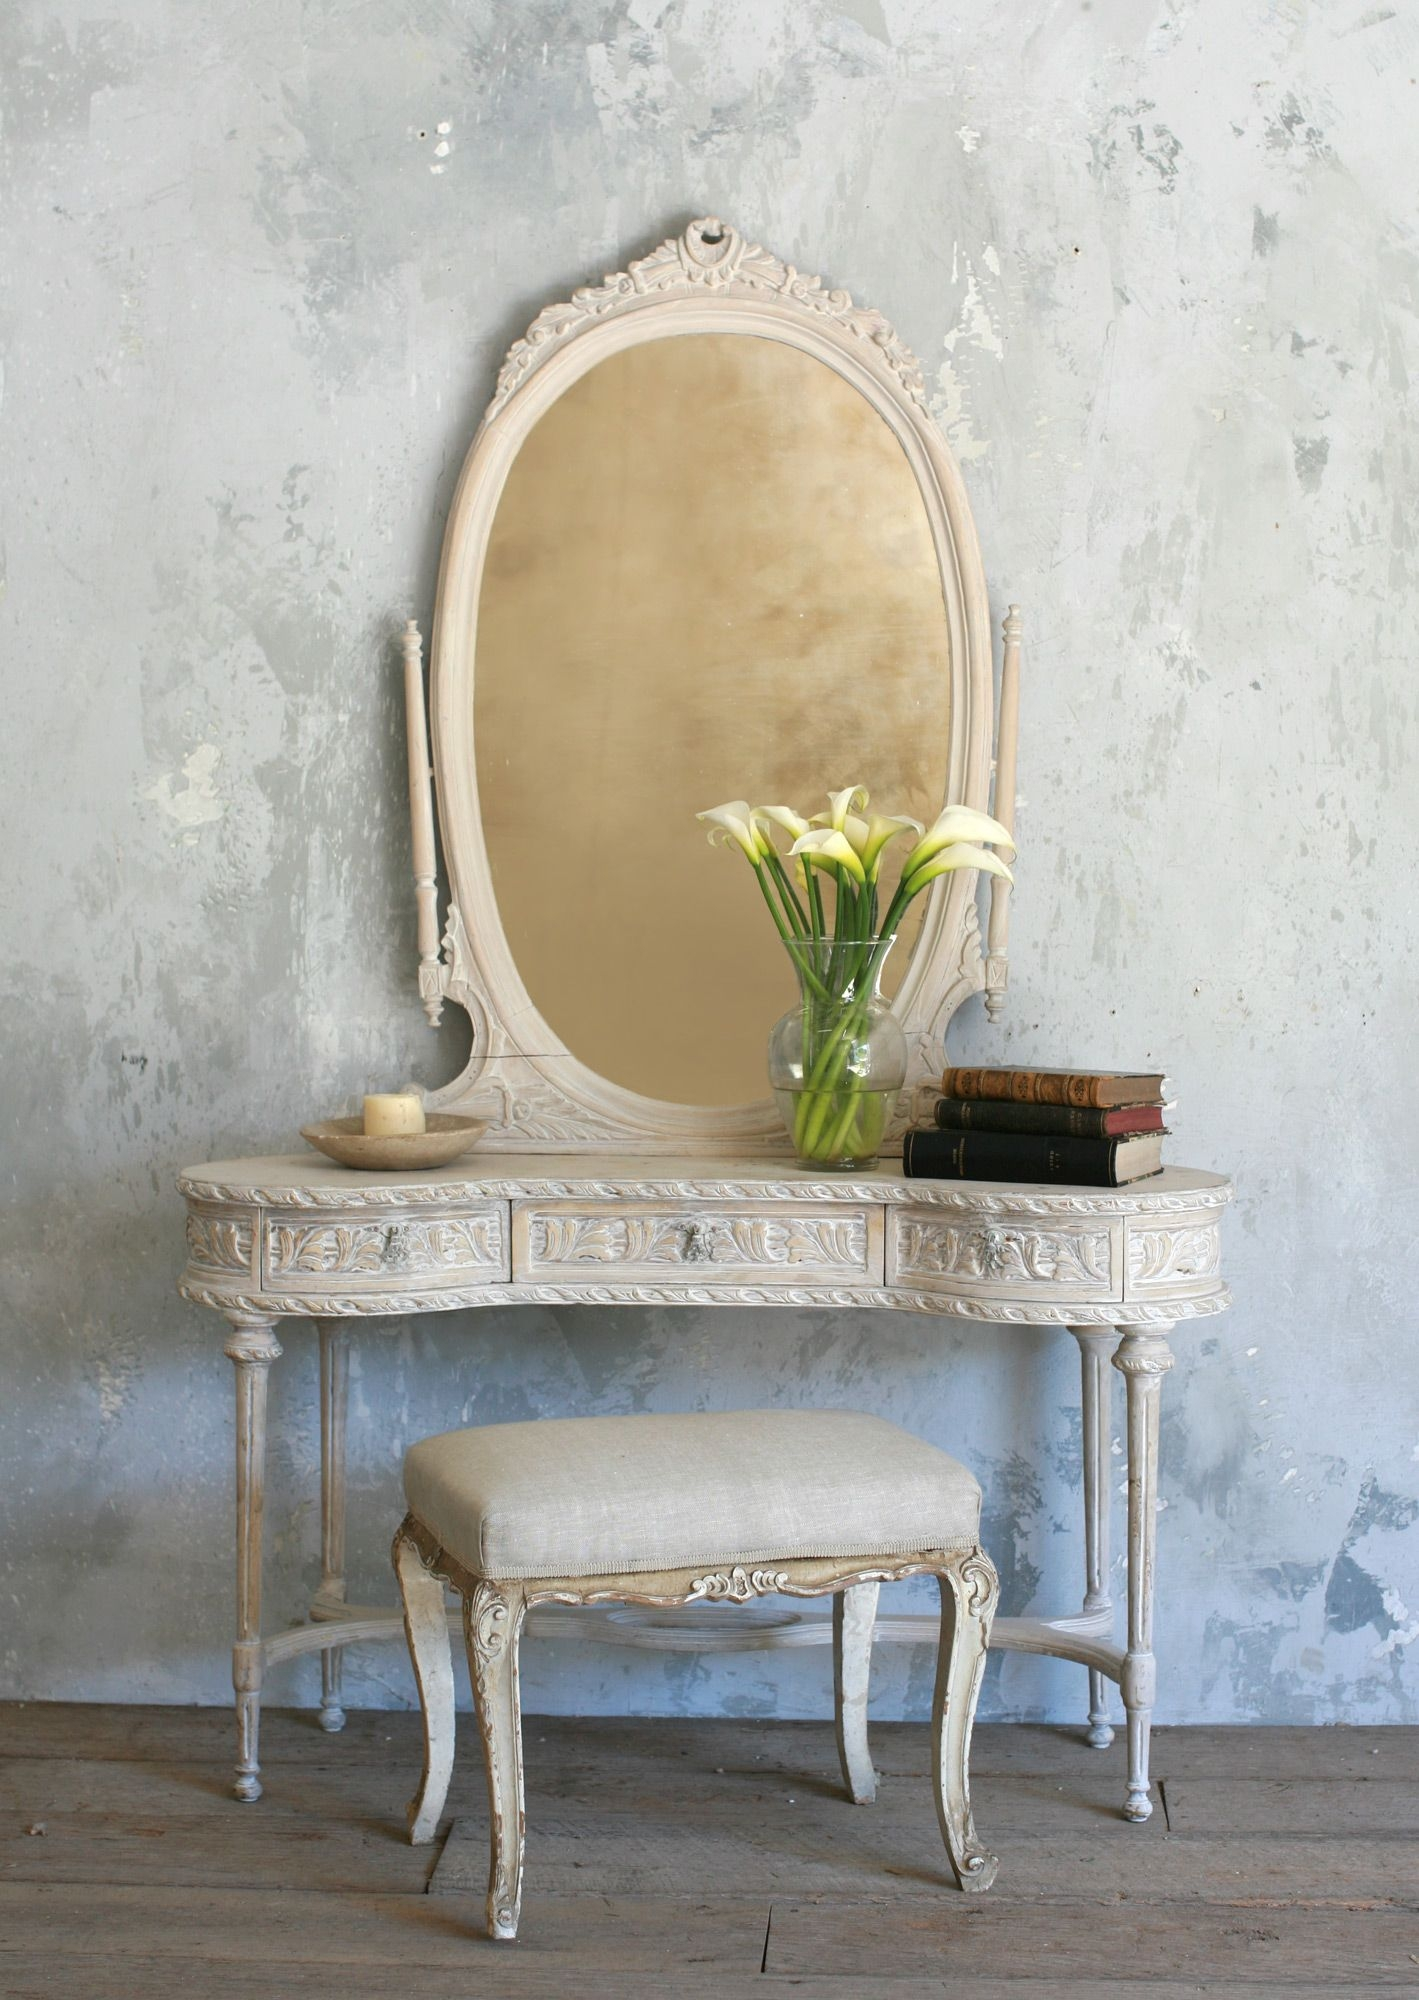 Antique Vanity With Mirror Bath Doherty House Antique Vanity Intended For Antique Bathroom Mirrors Sale (Image 8 of 15)